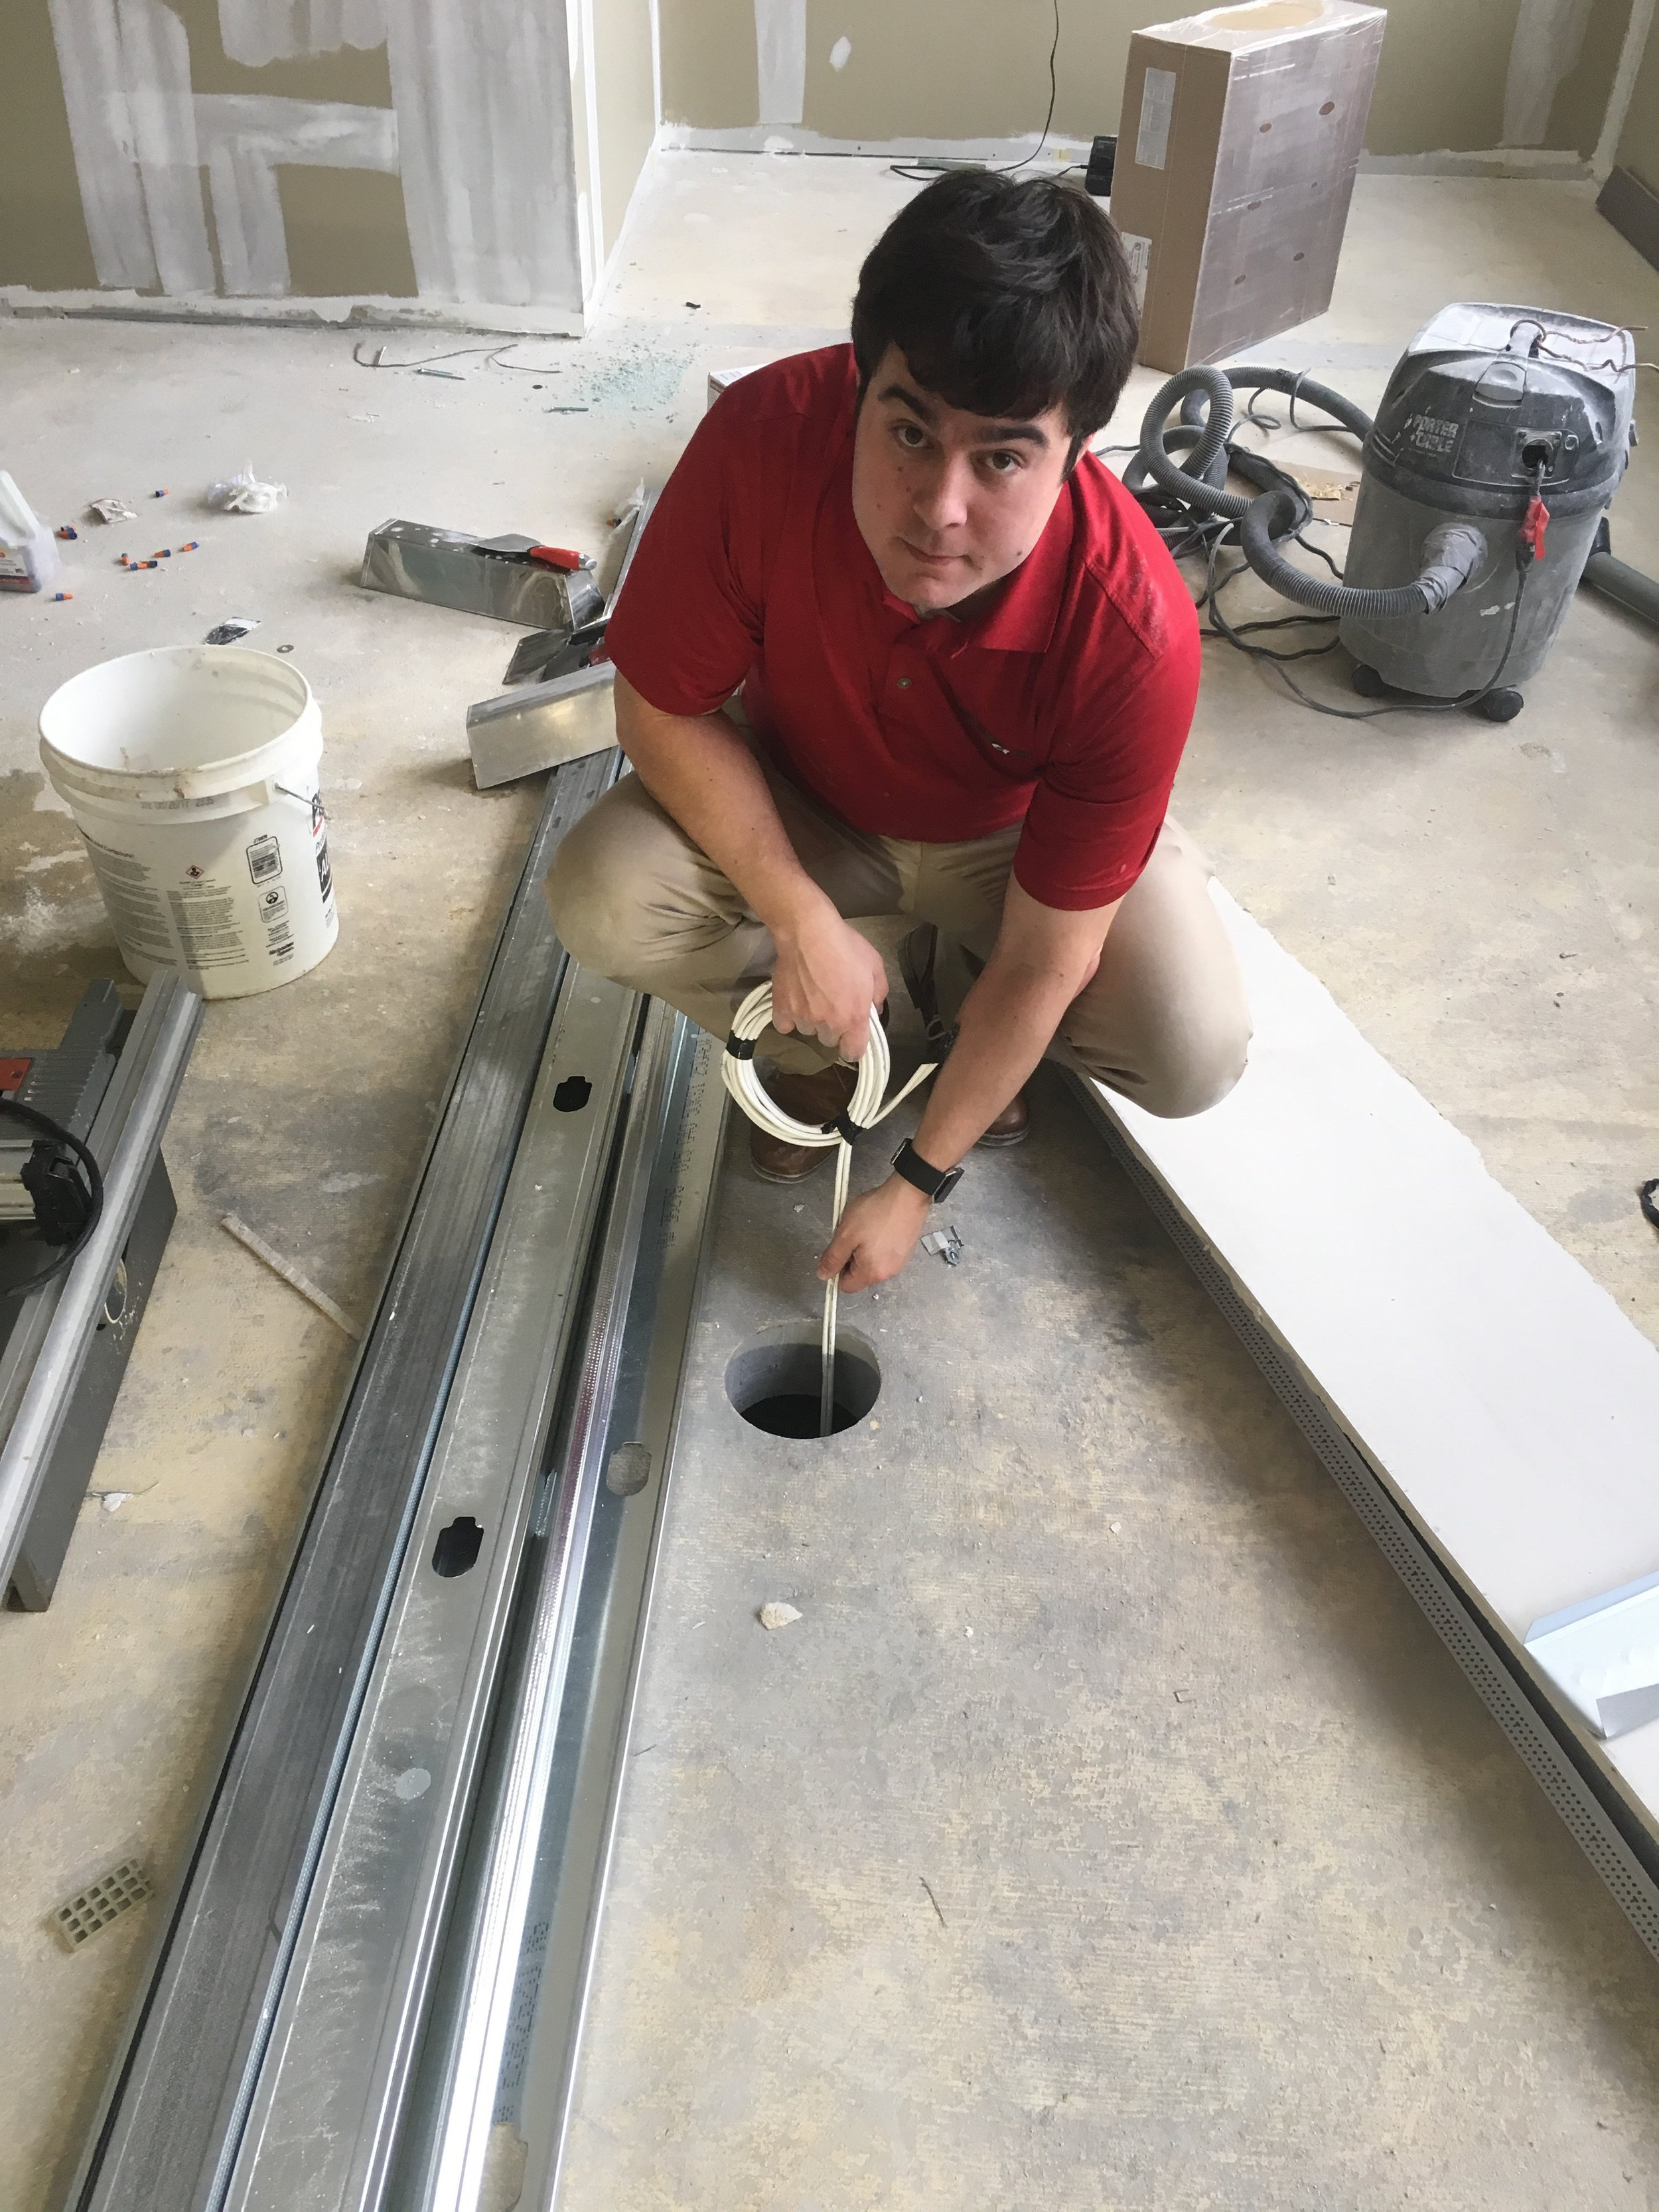 Our Service Manager, Ryan, running cat-6 cables for another client's office move. This one consisted of running wires through the ceiling, wall, and under the floor to be ready for a state-of-the-art conference table.